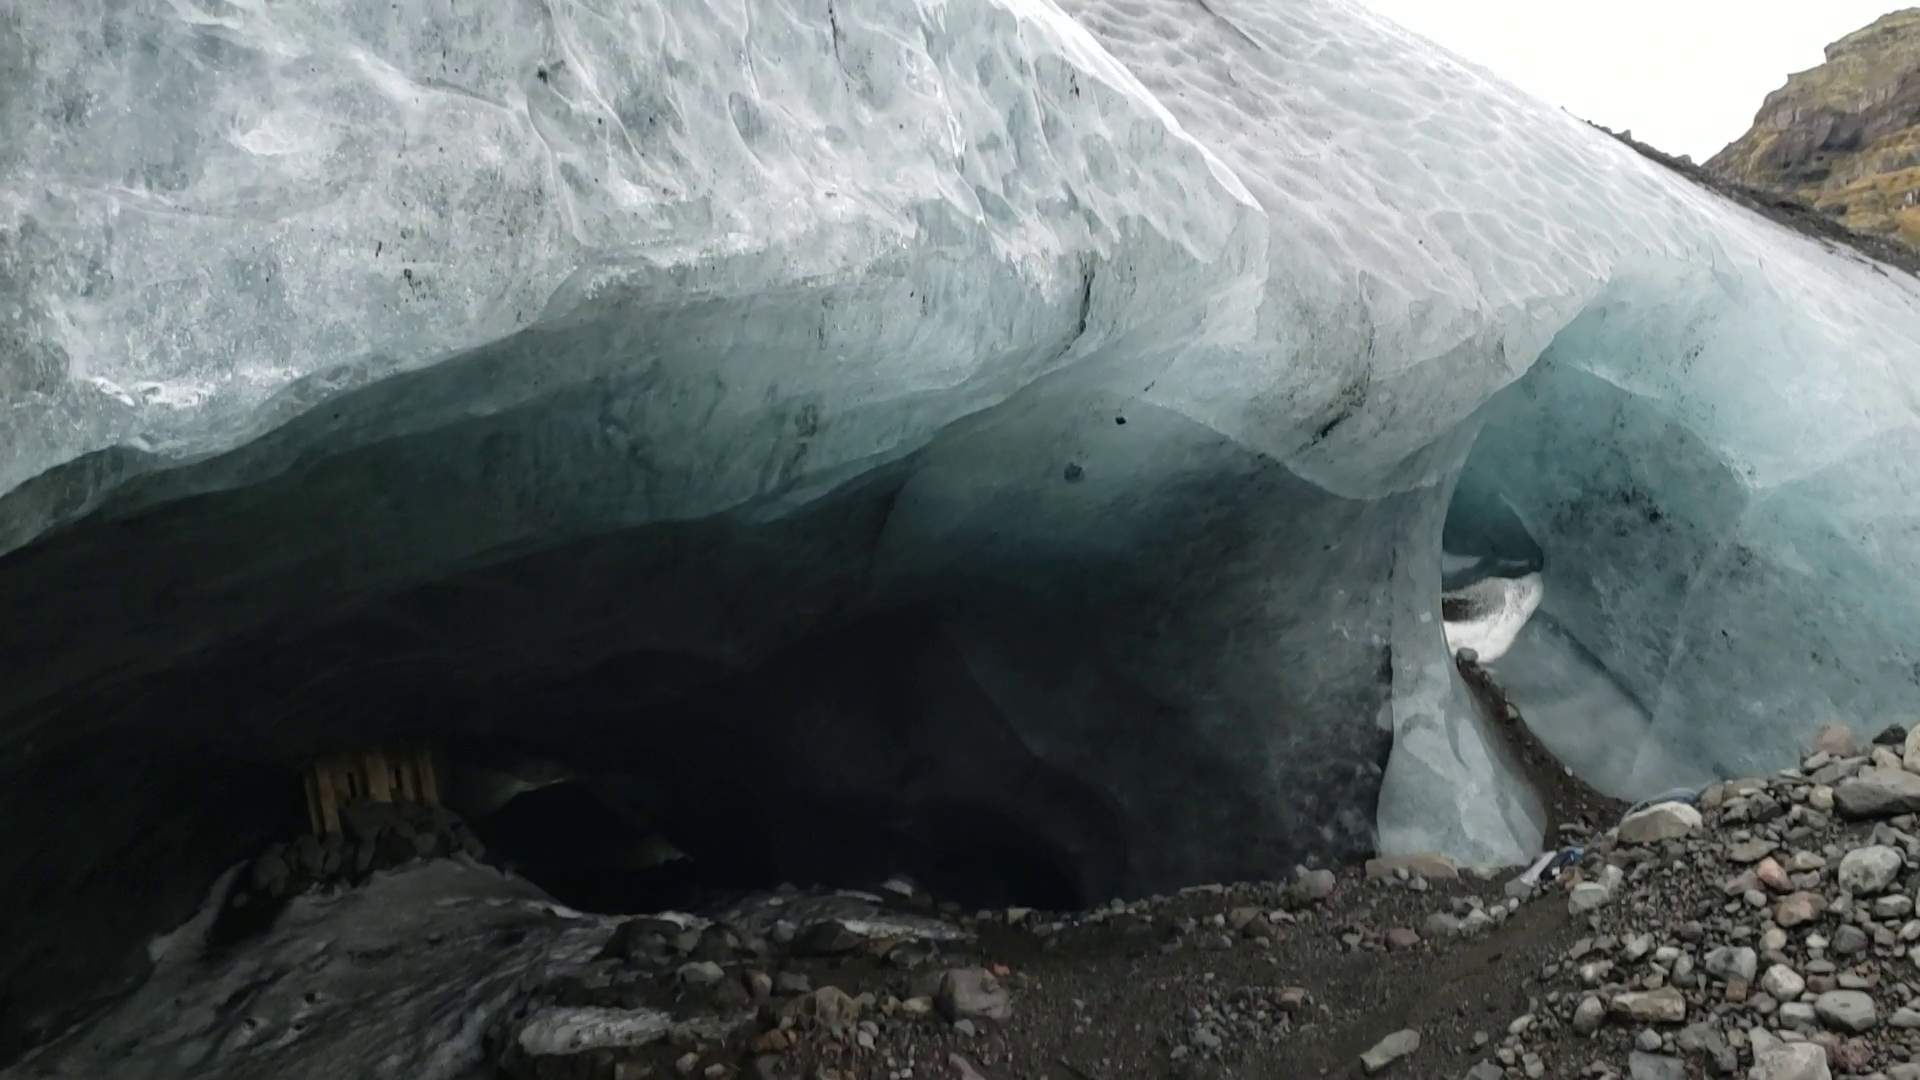 view of ice cave in iceland